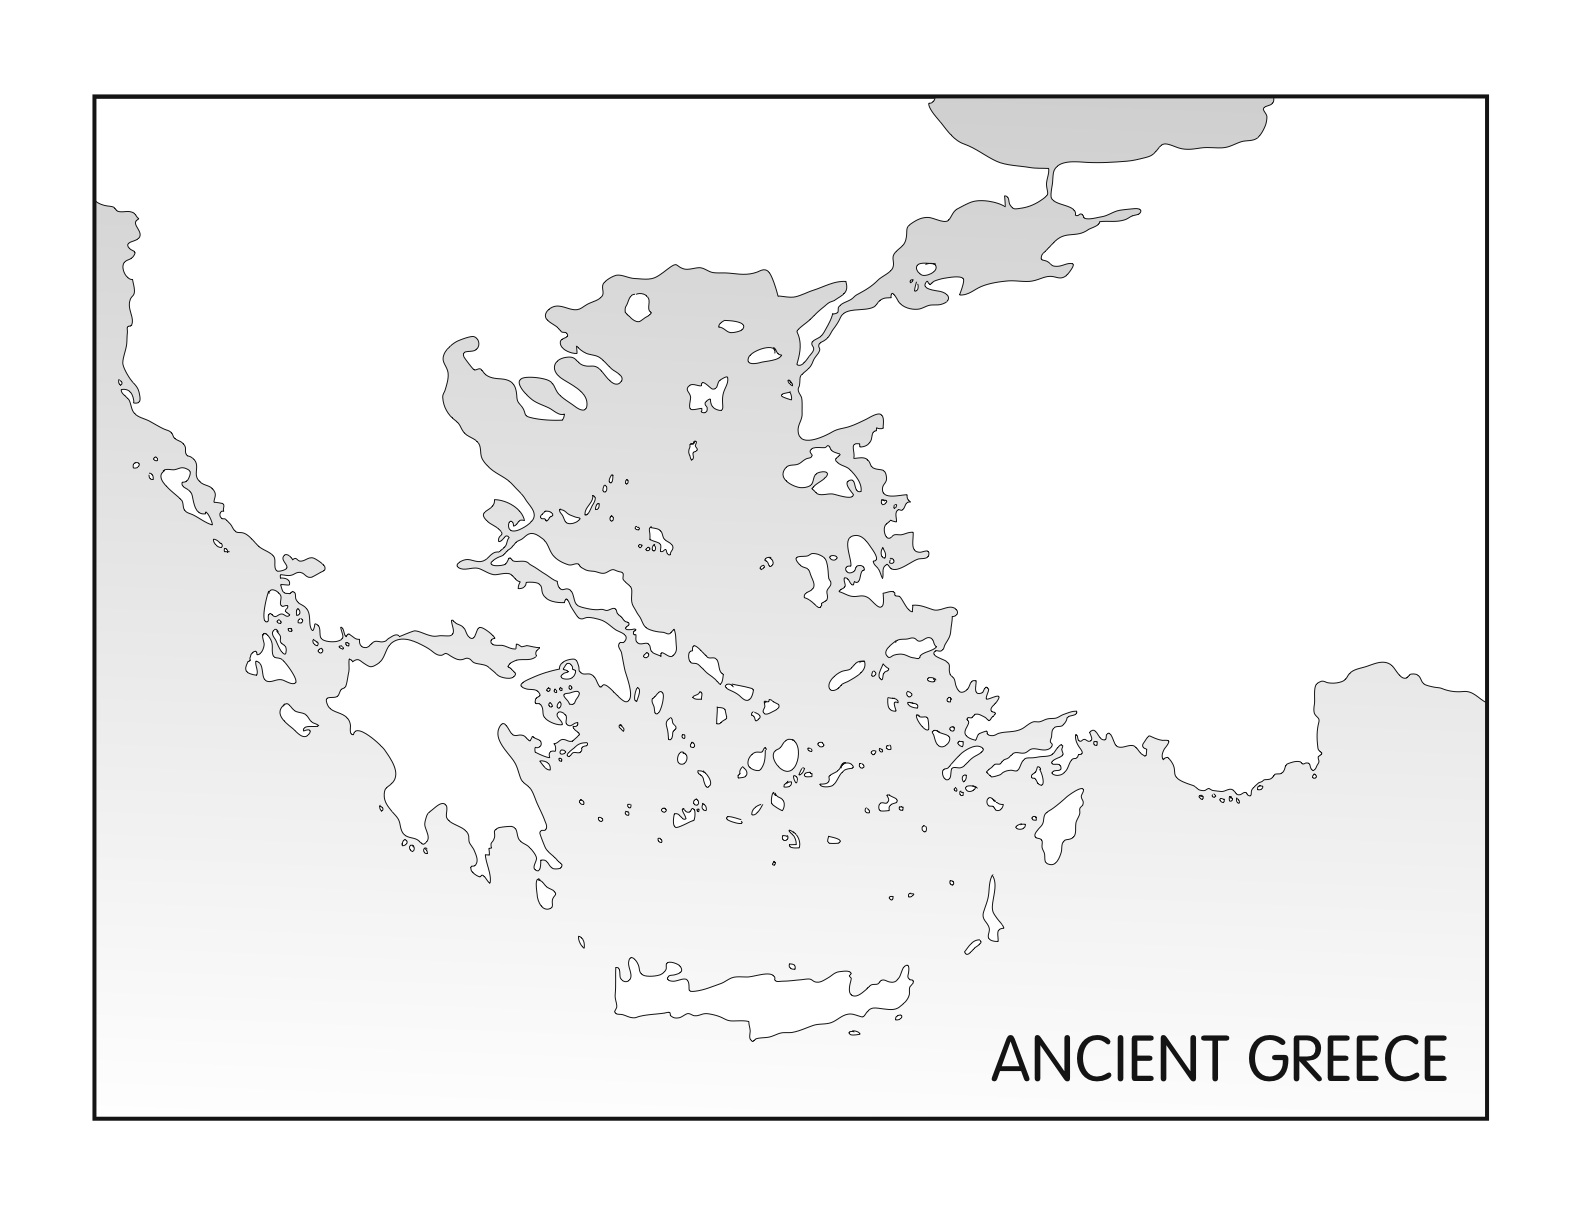 Outline Maps Ancient Egypt And Greece